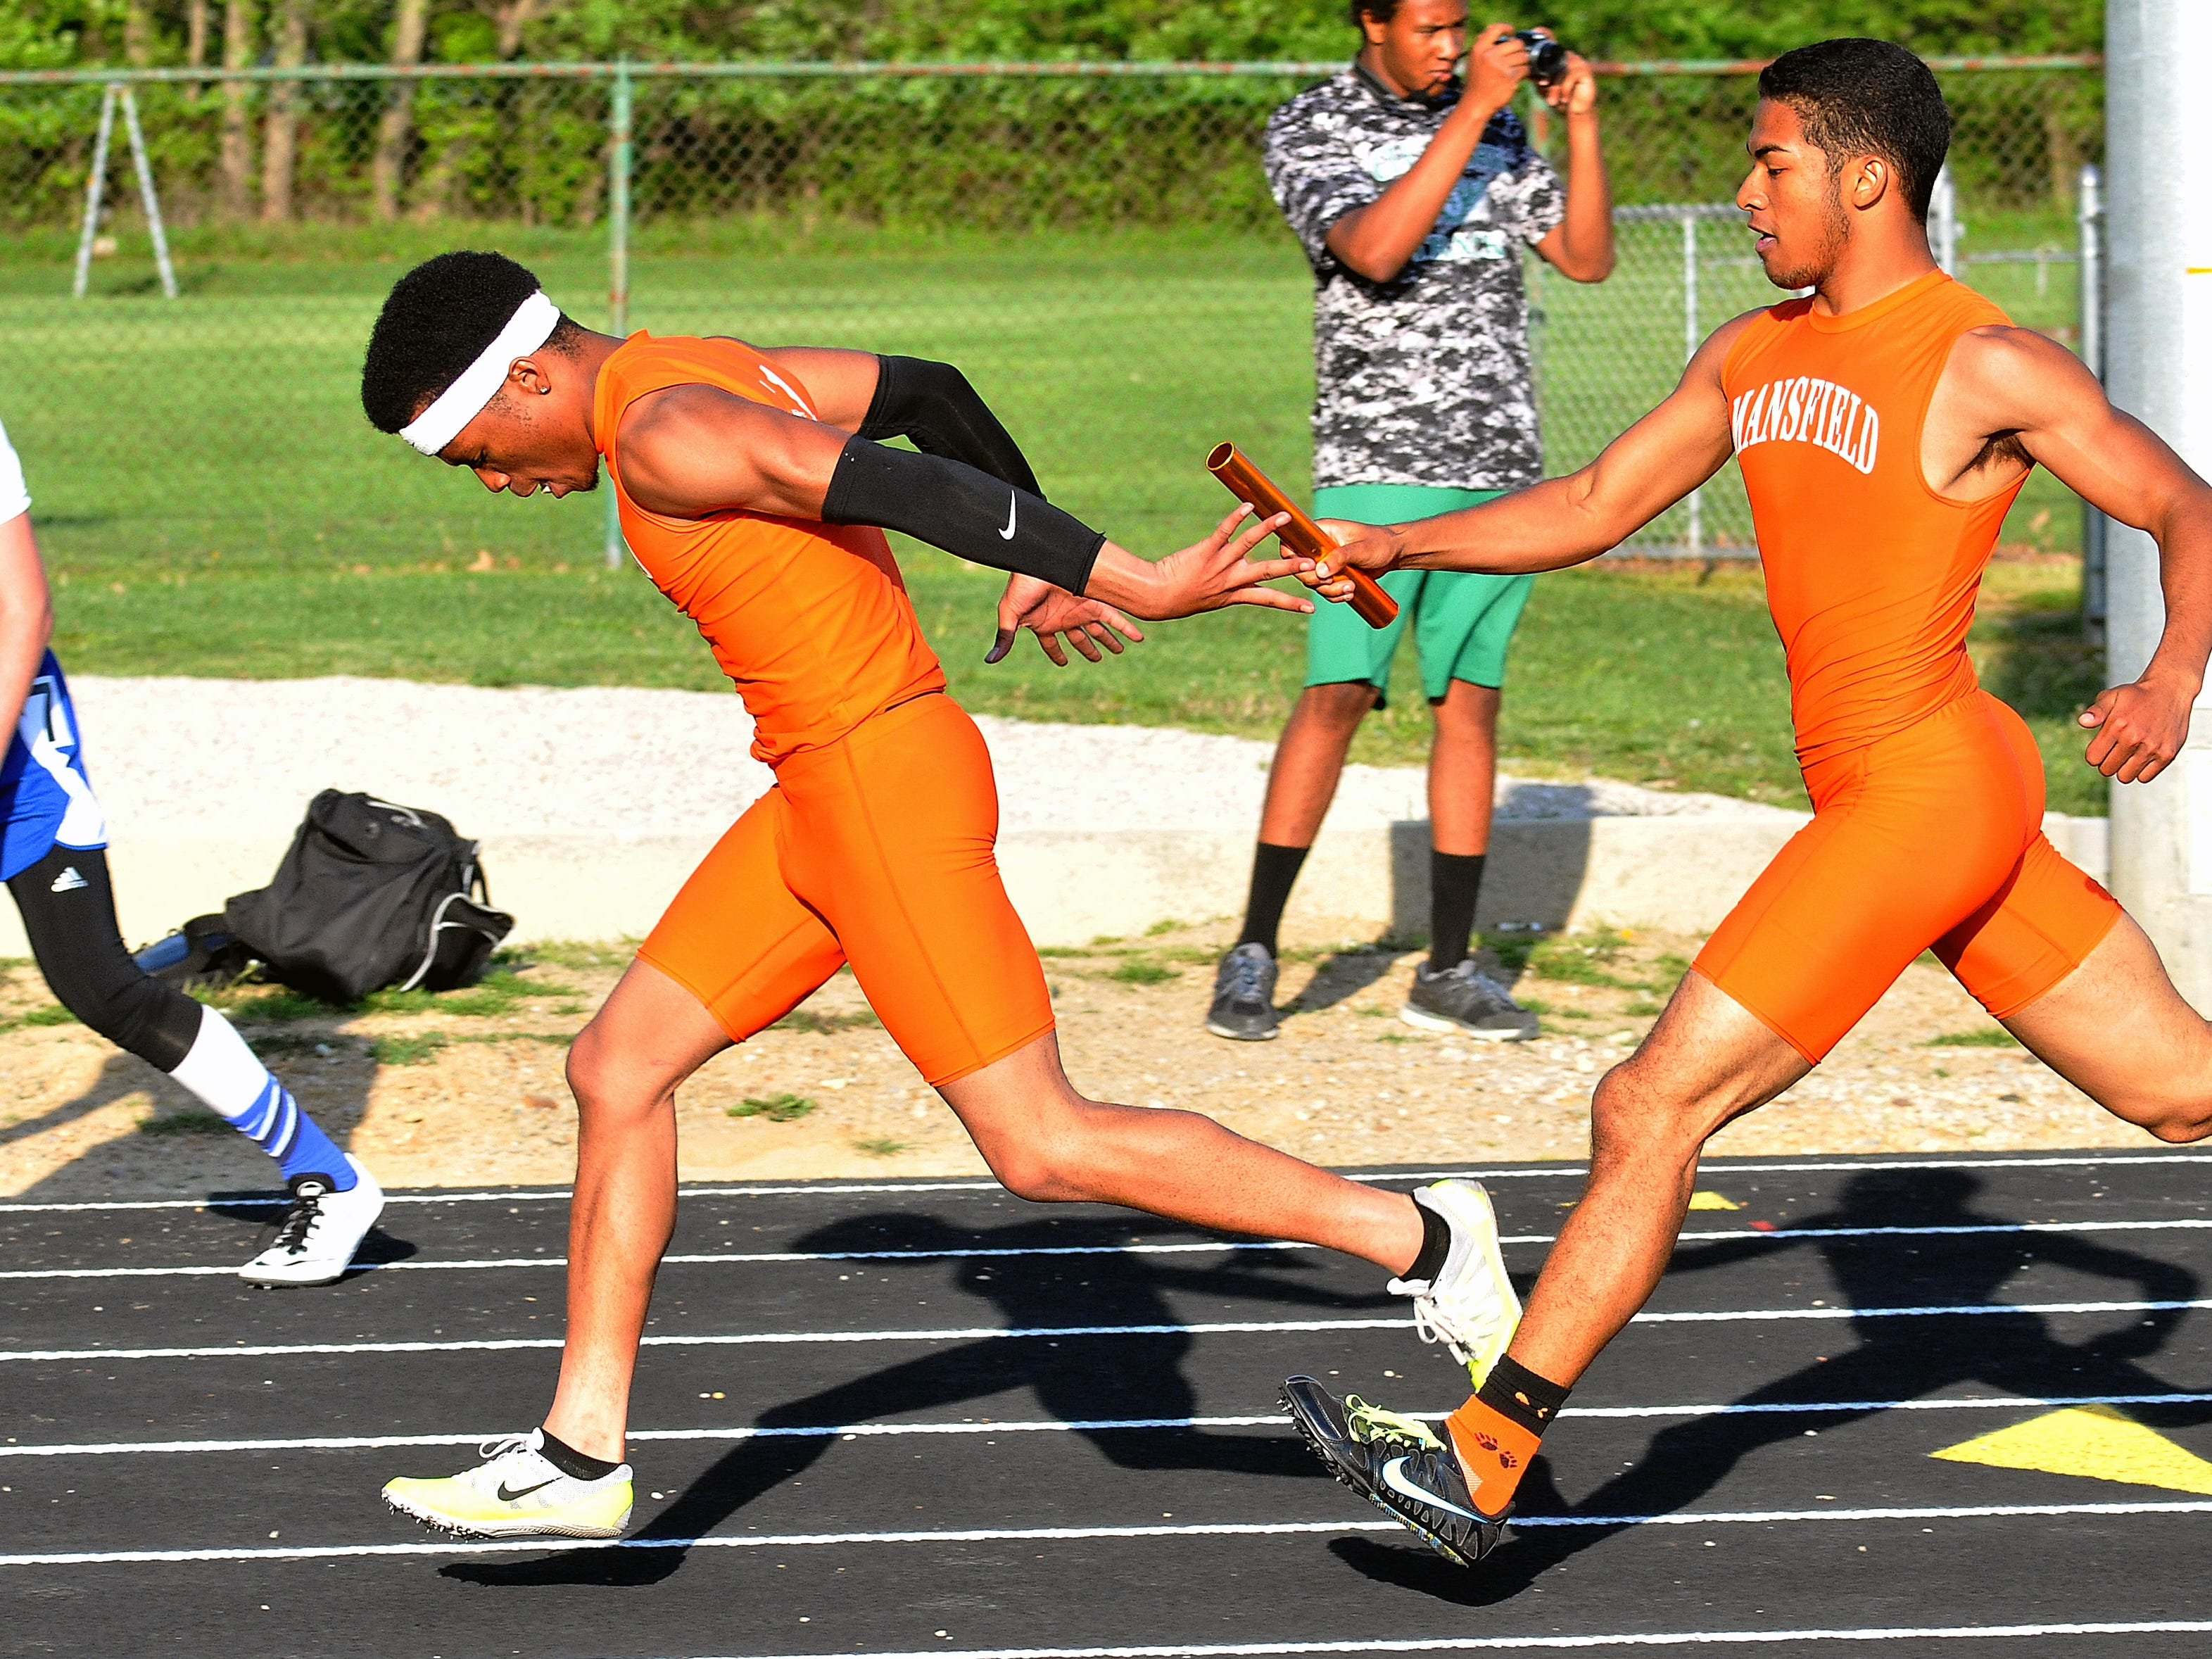 Mansfield Senior's George Swarn hands off to Jacquez Wellington during the boys 4X200 Meter Relay at Madison High School Friday.